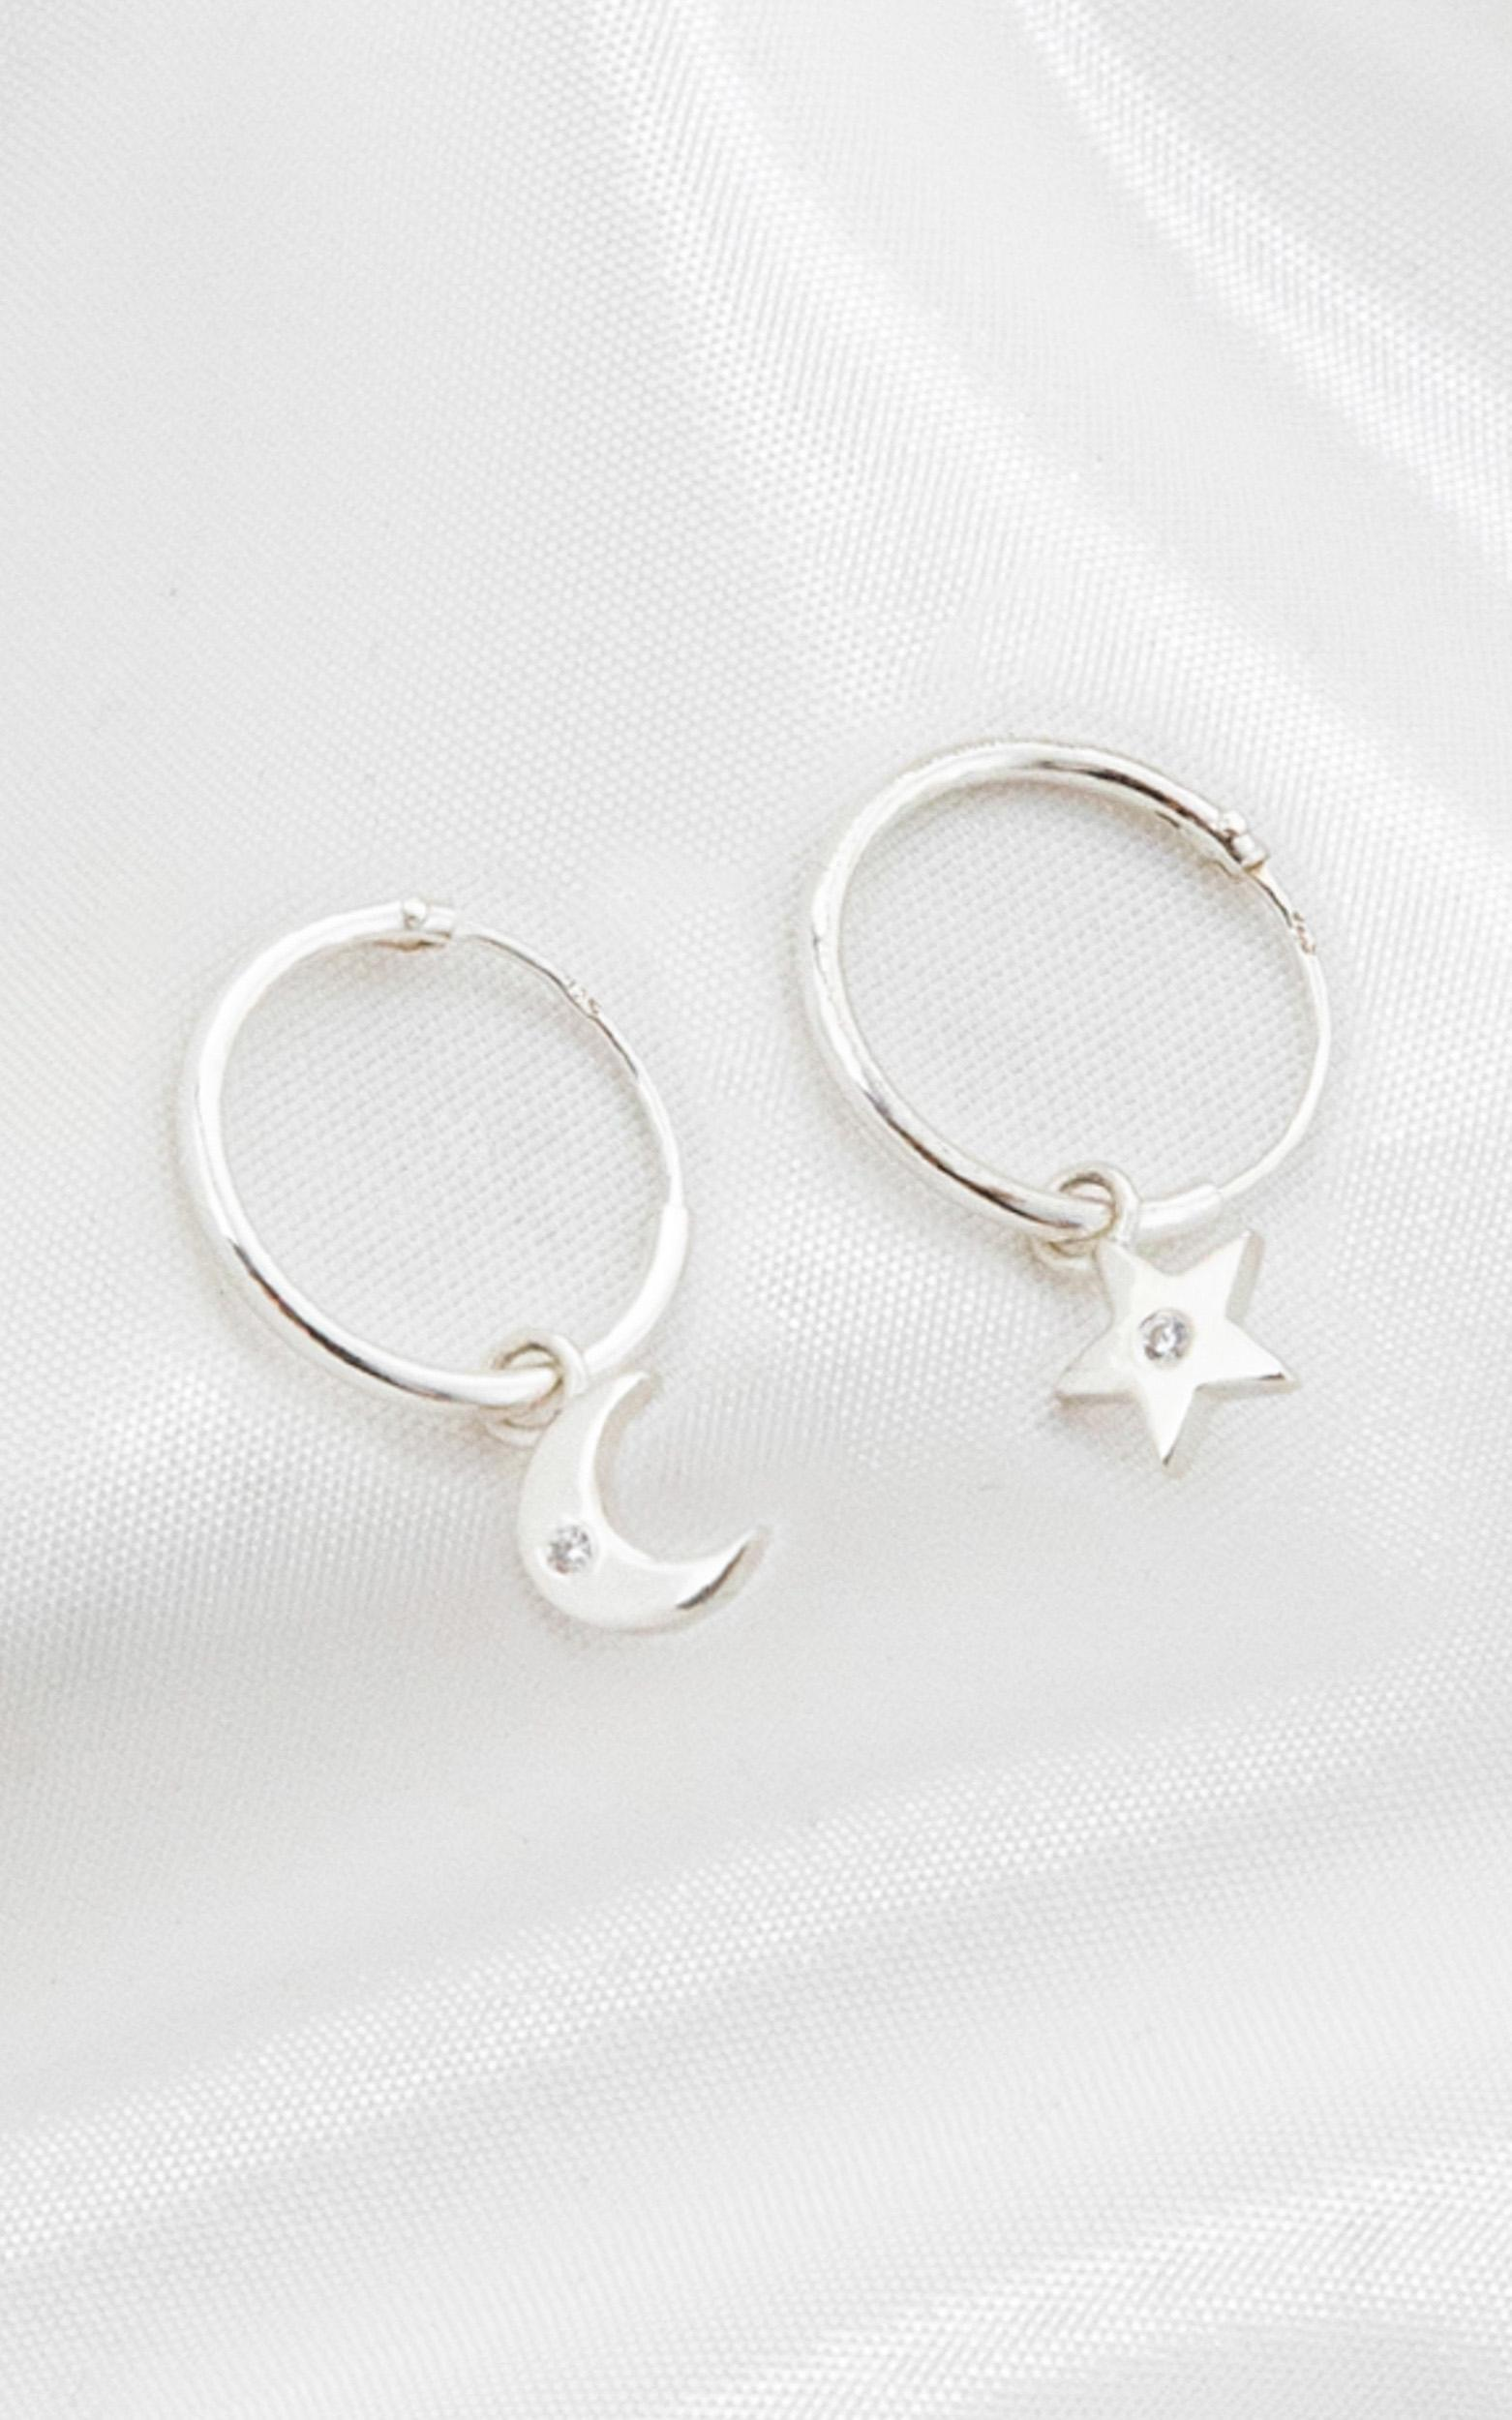 Midsummer Star - Sparkling Galaxy Sleeper Earrings In Silver, , hi-res image number null